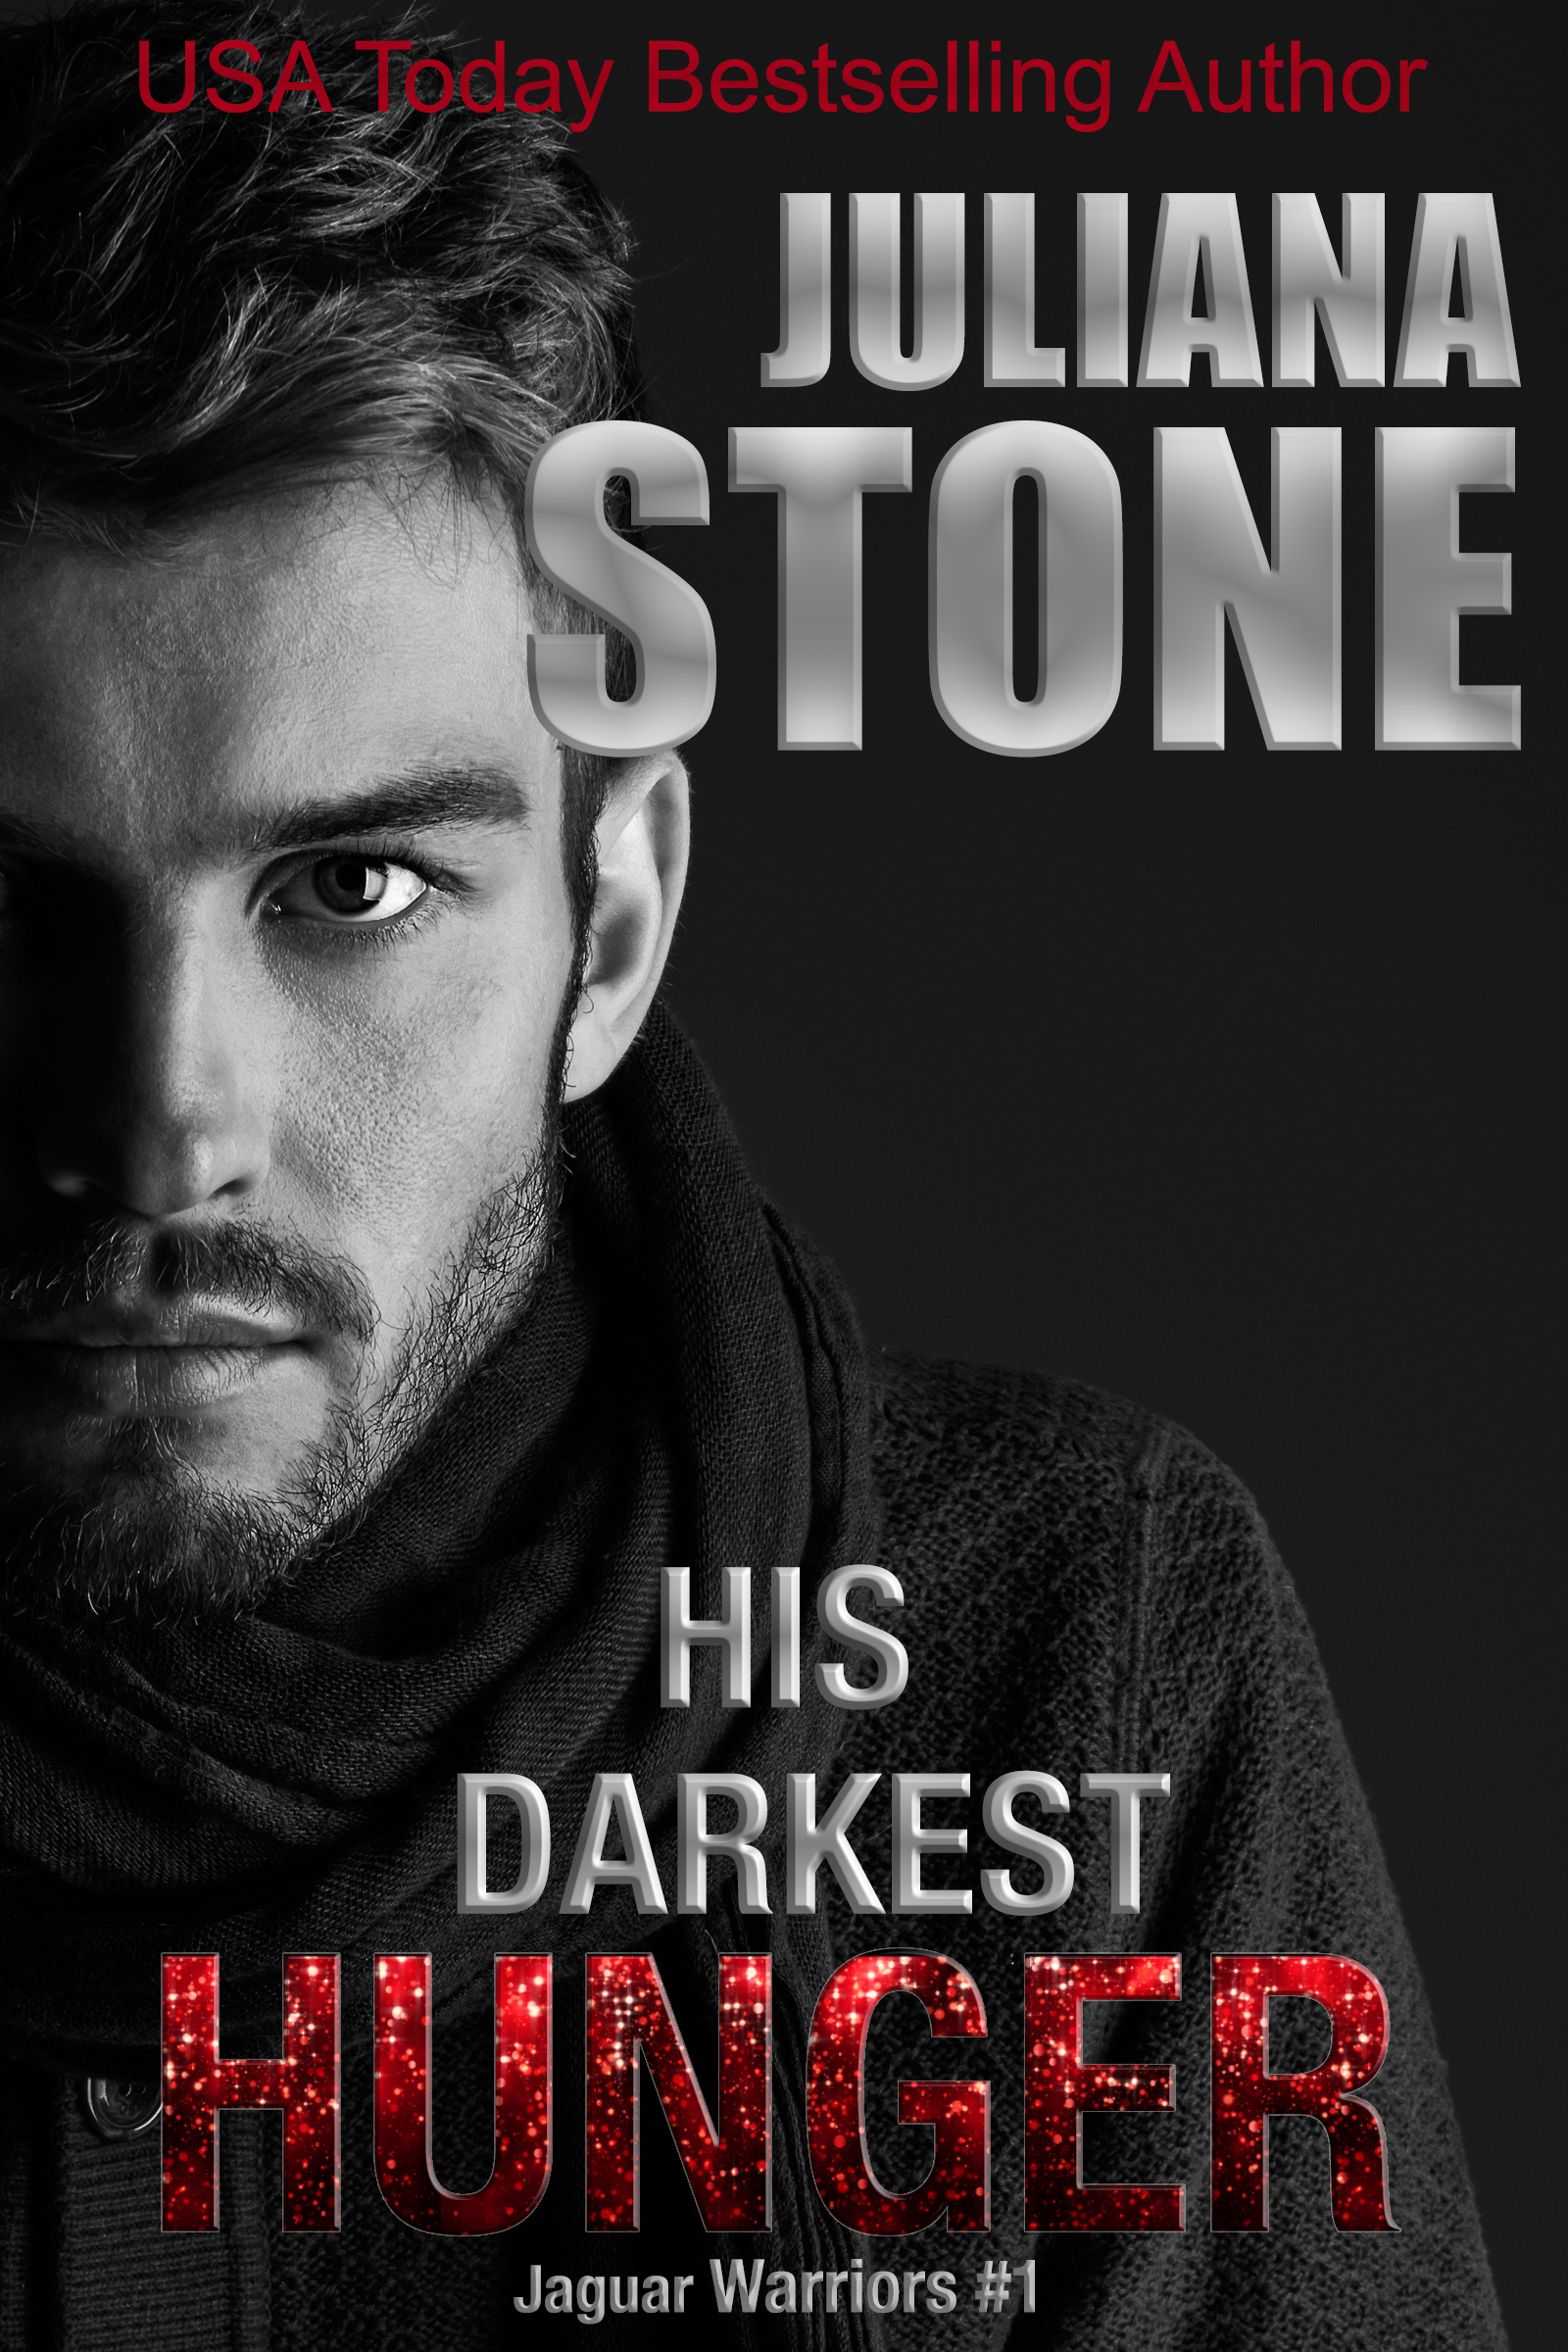 His Darkest Hunger by Juliana Stone